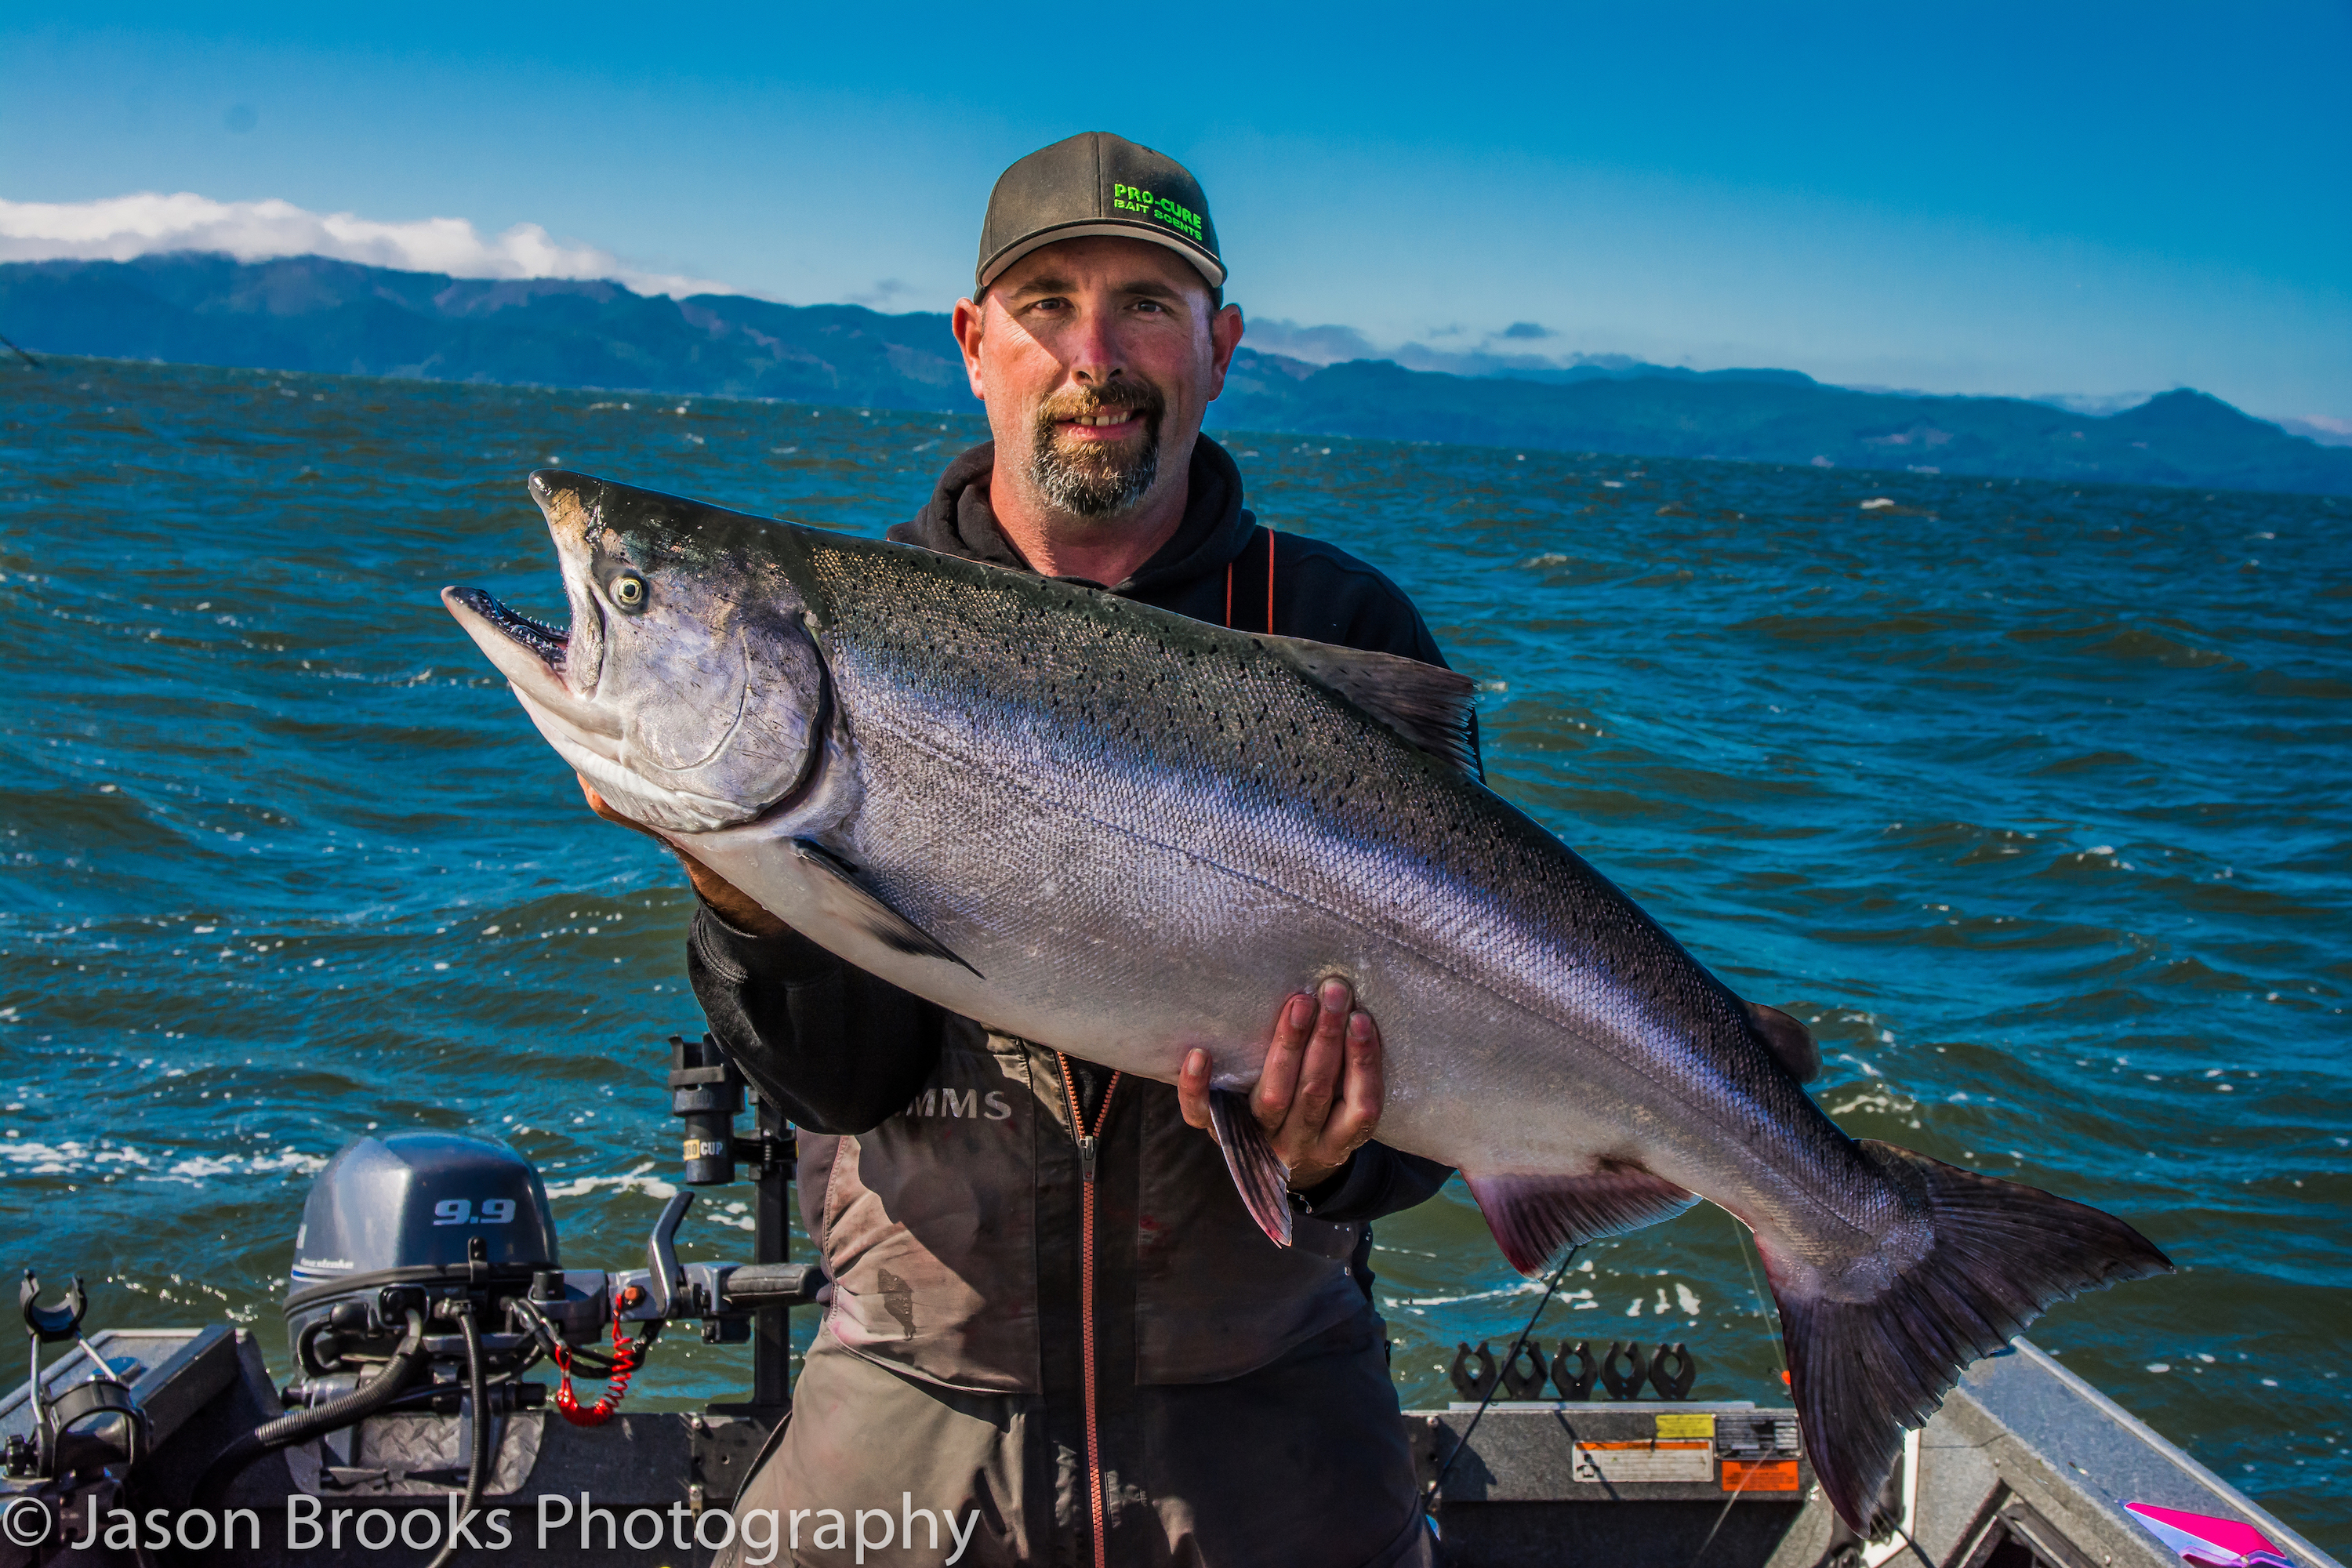 Jason Humbly of Pro-Cure with a Buoy 10 King